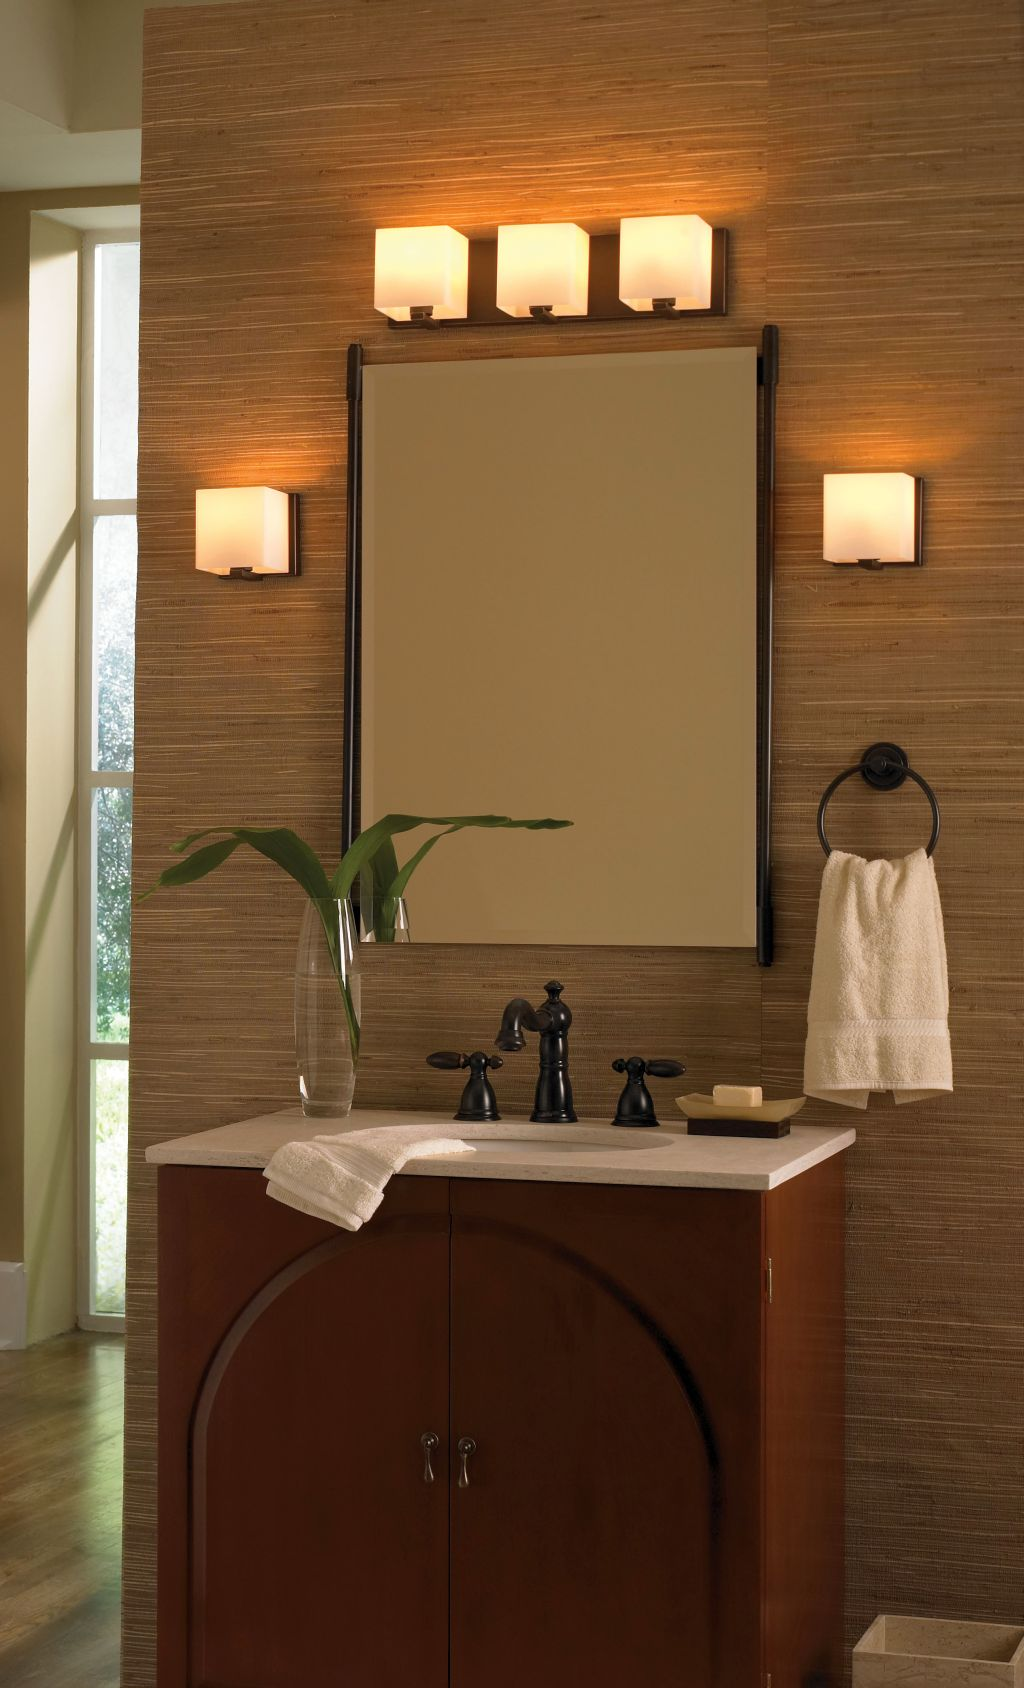 Retro bathroom vanity lighting ideas for Vintage bathroom lighting ideas